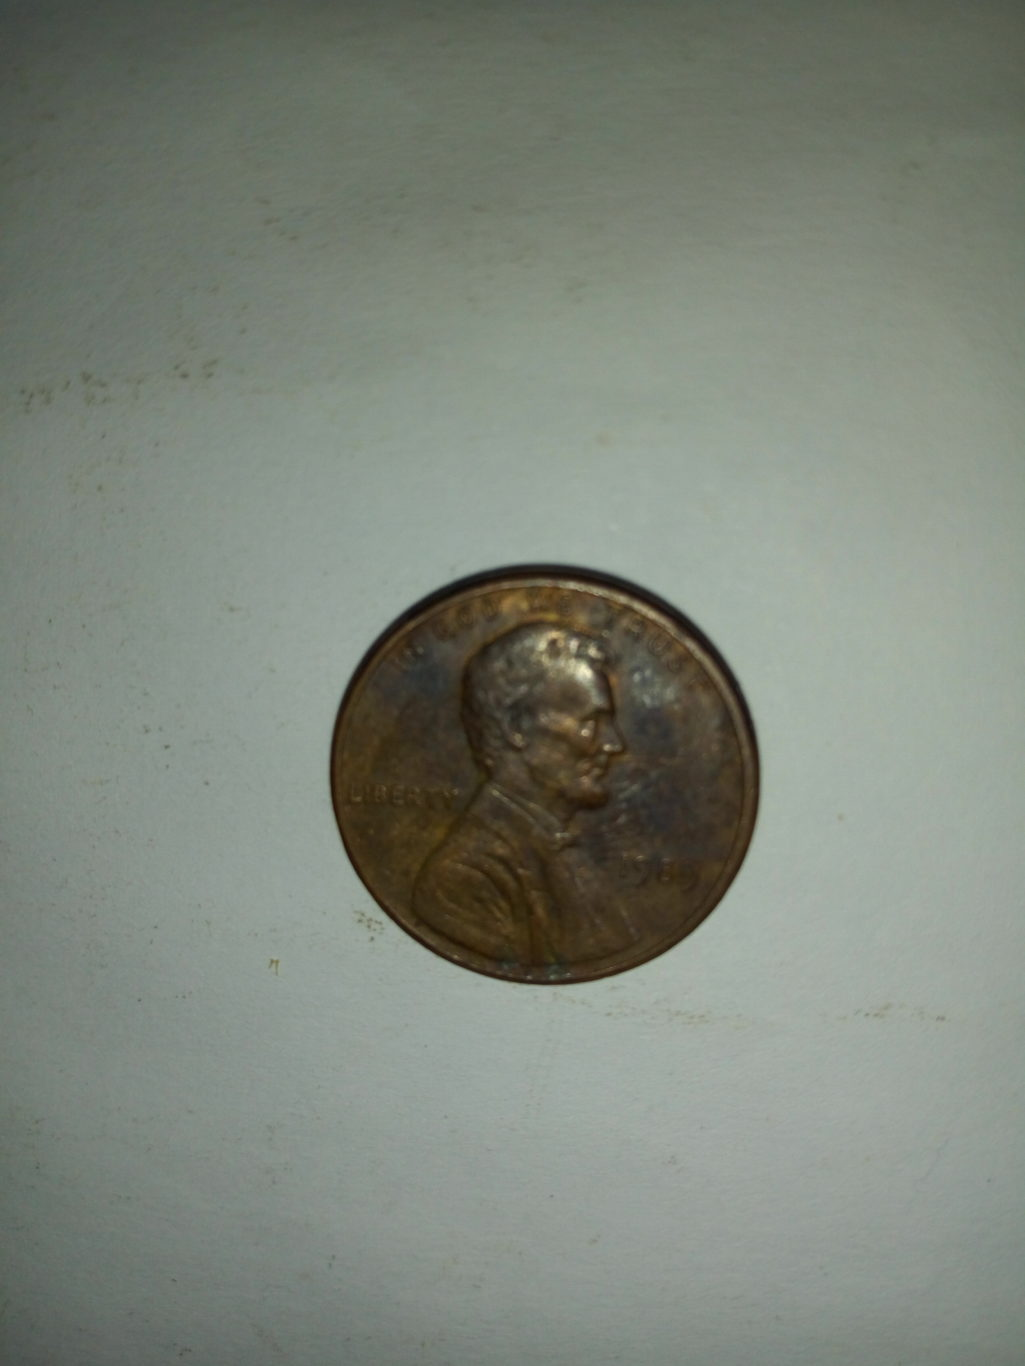 1989_united States of America 1 cent